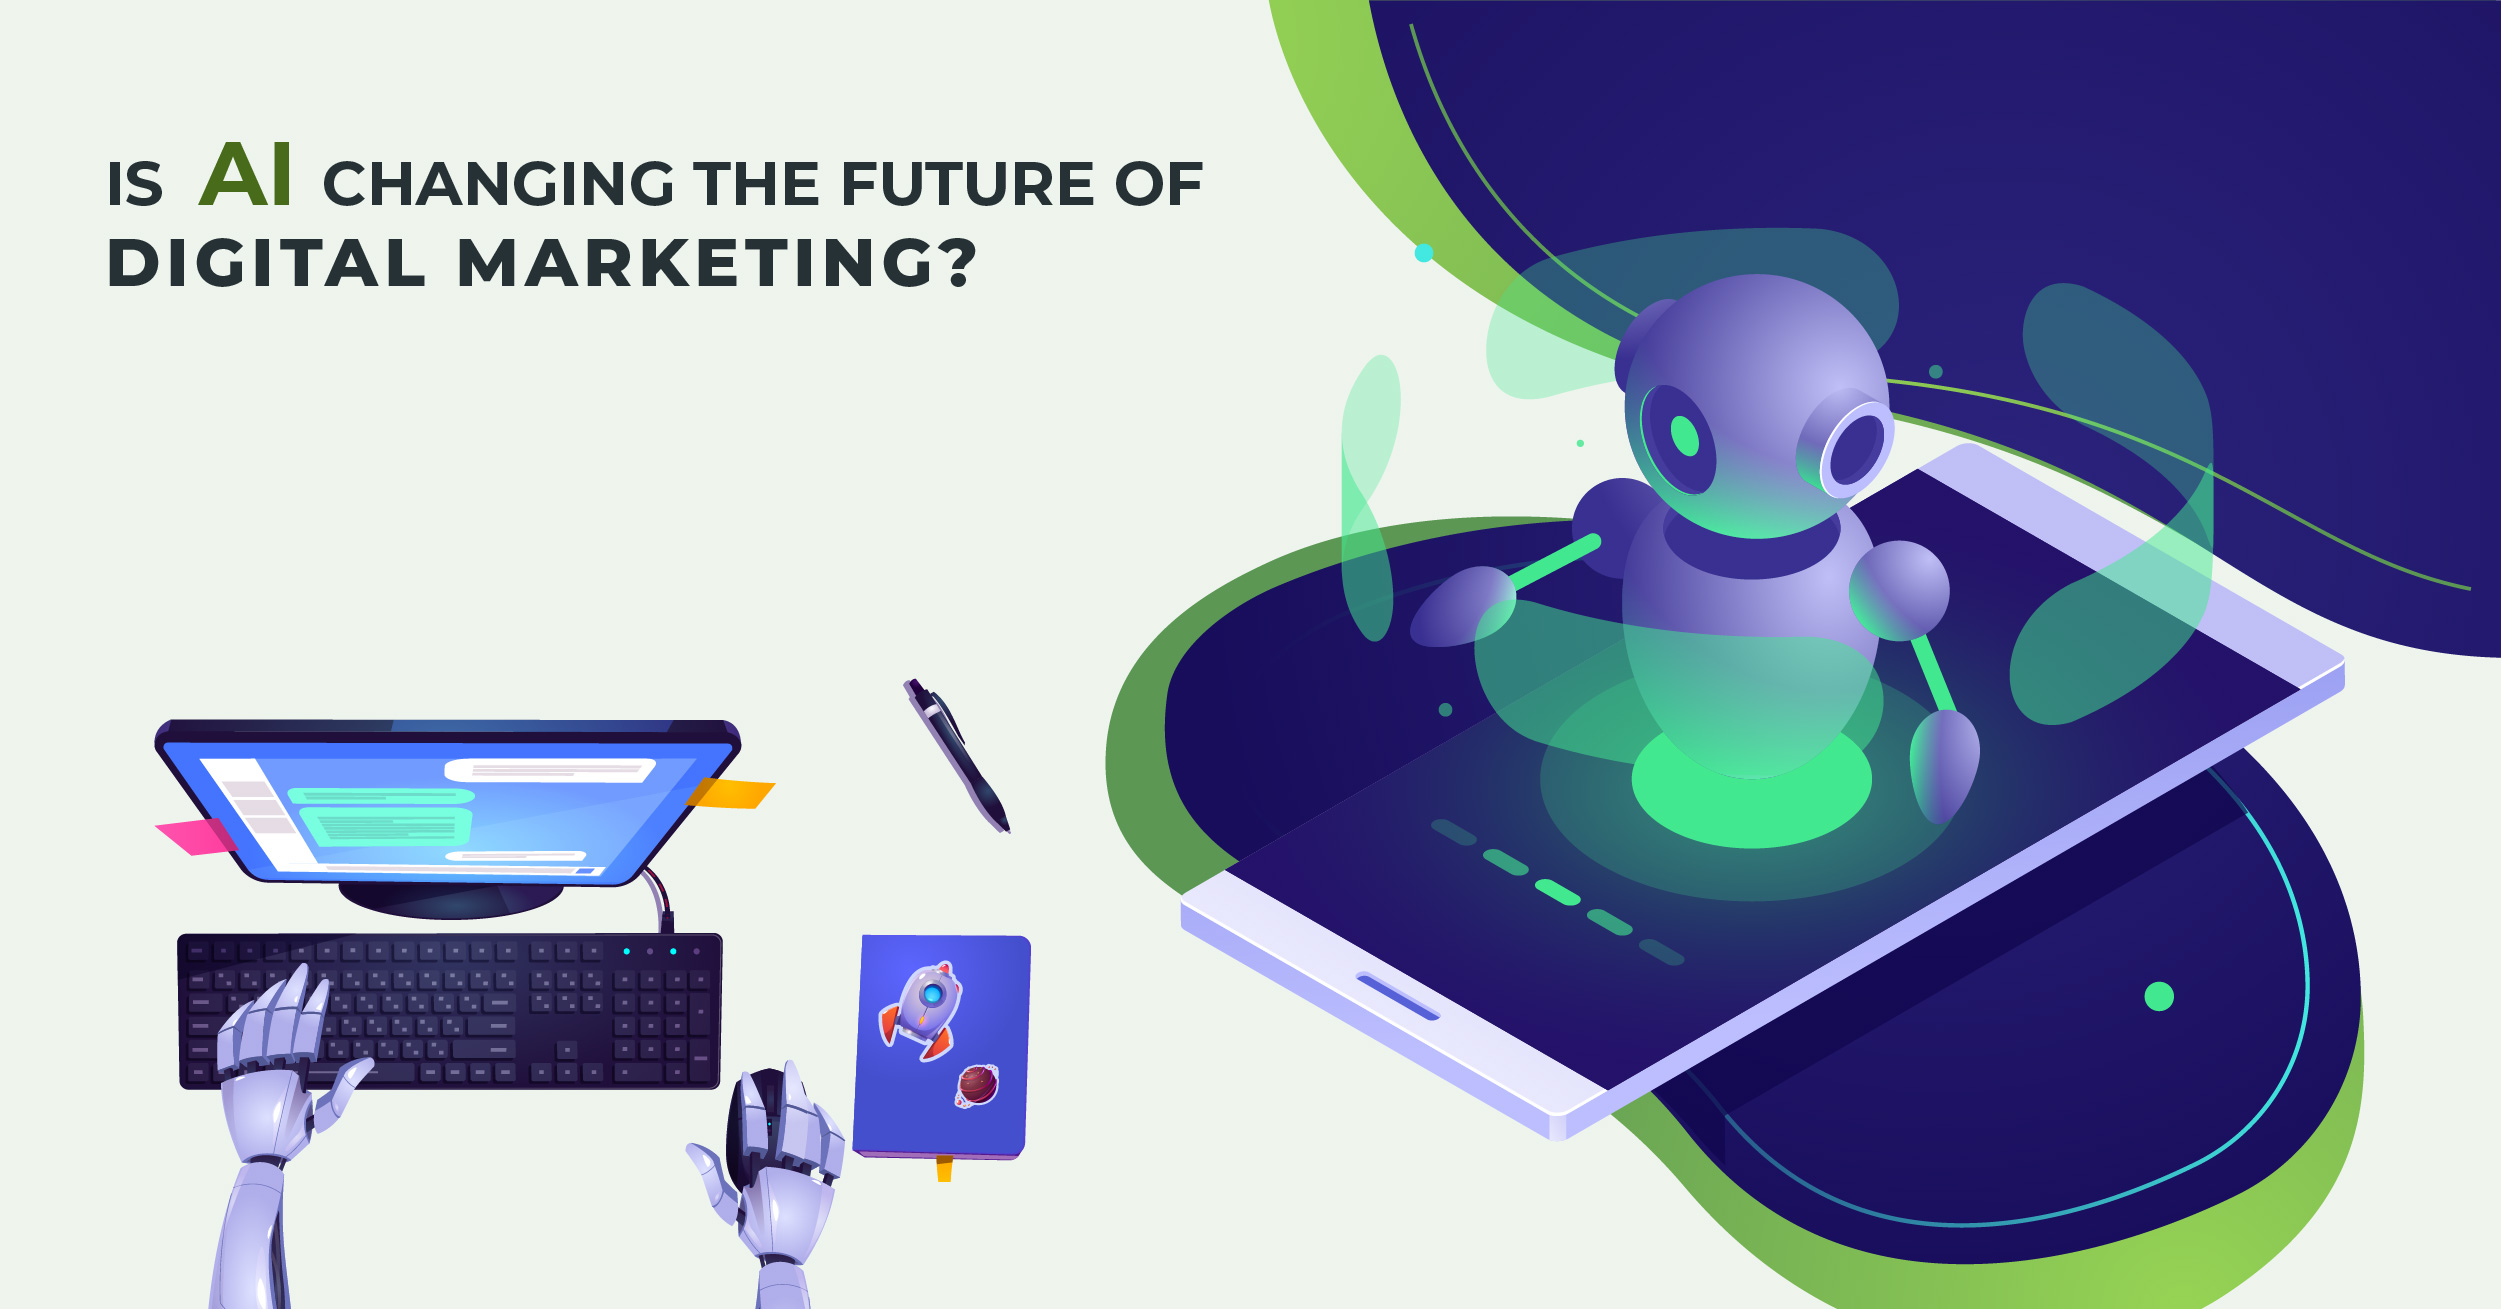 Is AI challenging future of digital marketing